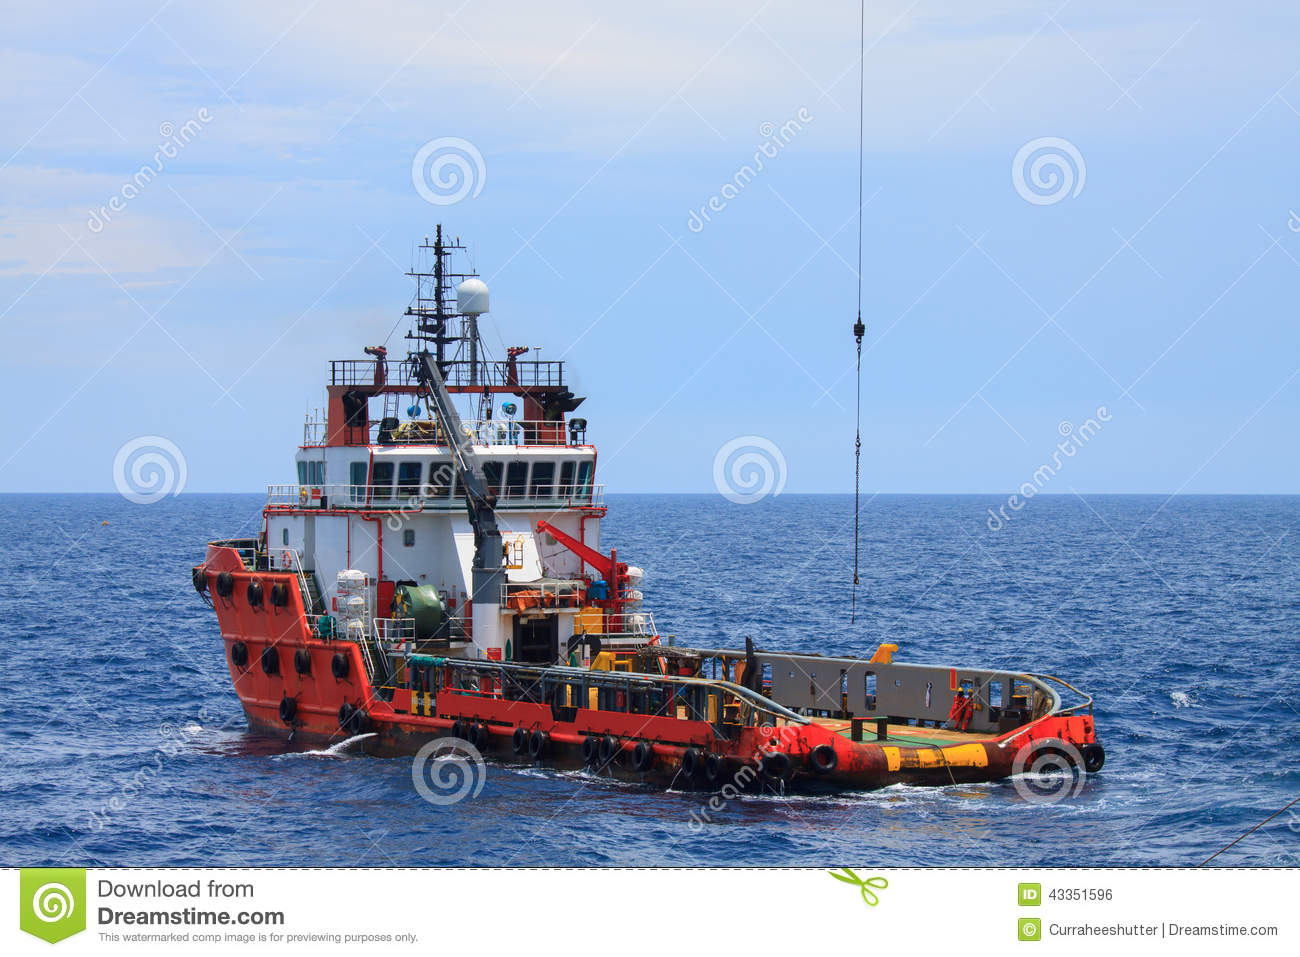 Crew And Supply Vessel Offshore Or Supply Boat. Stock Photo - Image: 43351596